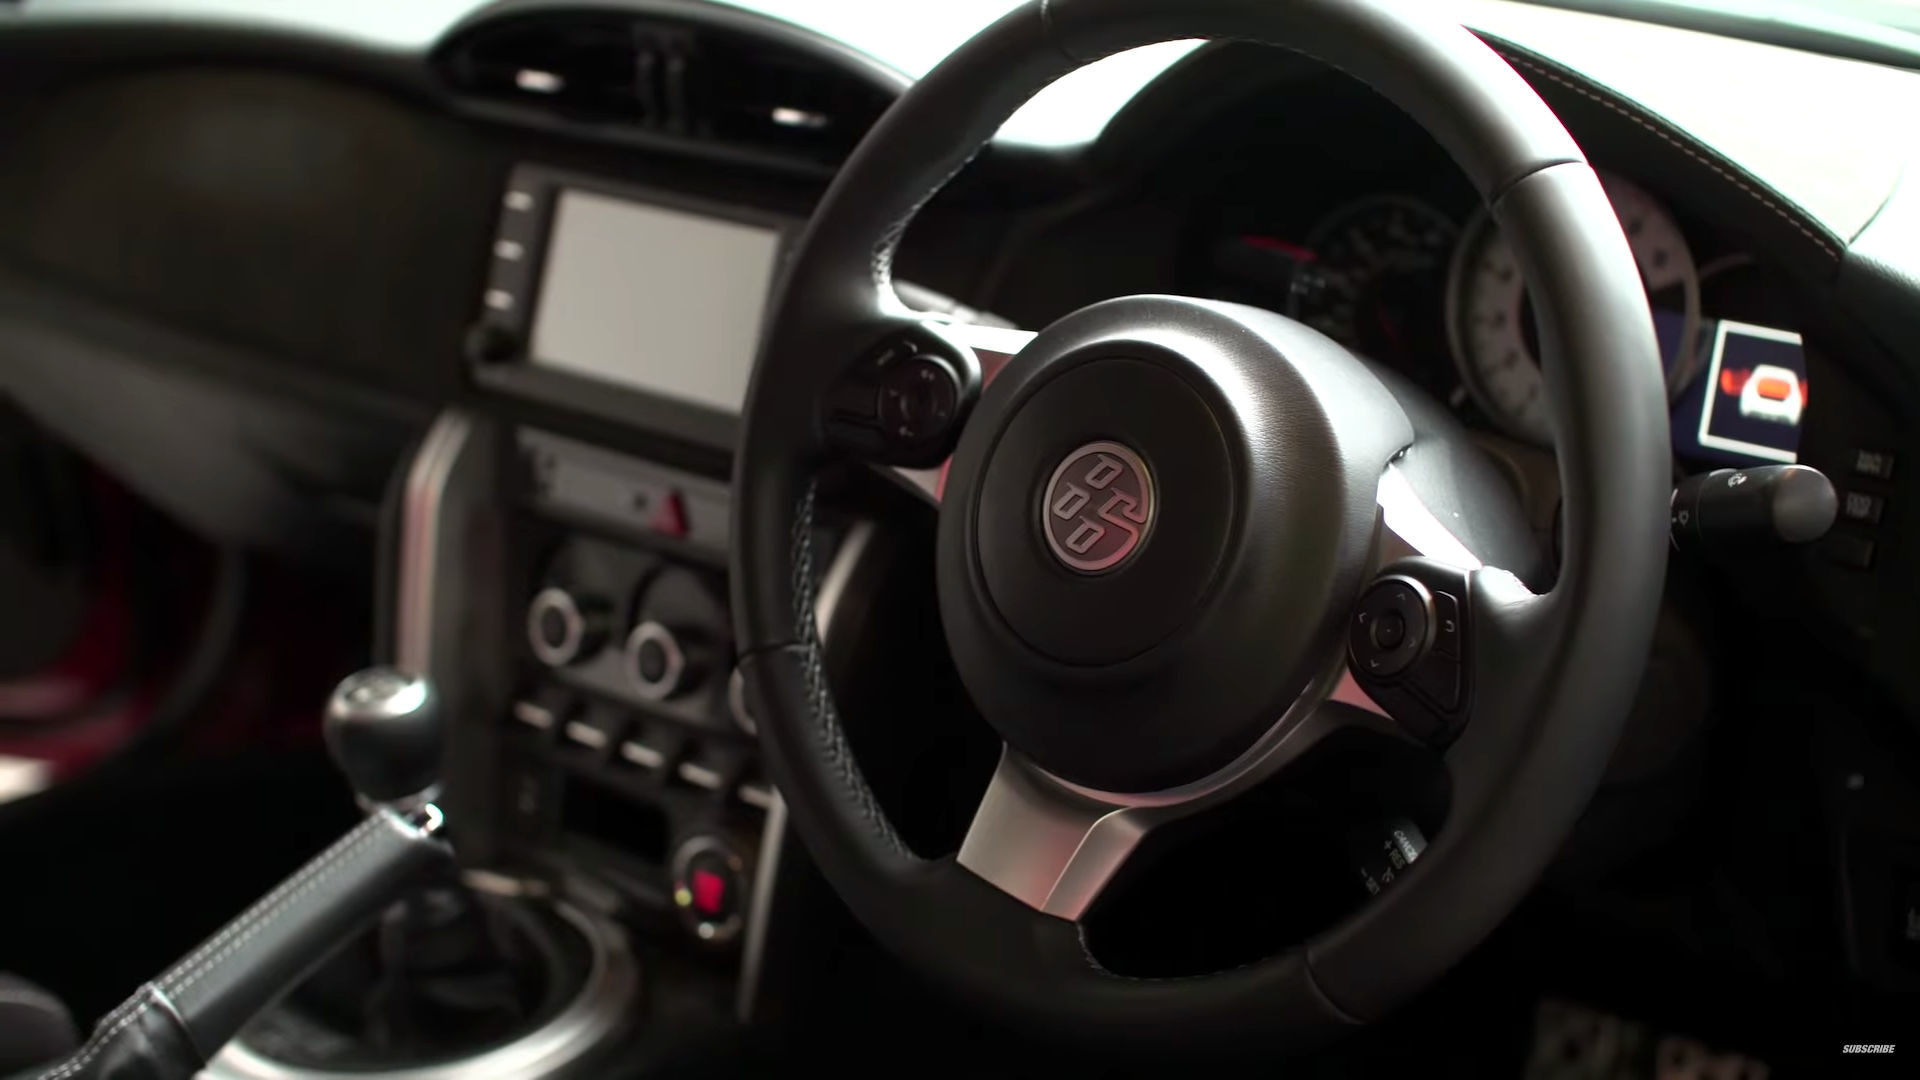 Toyota GT86 takes over as Top Gears Reasonably Fast Car